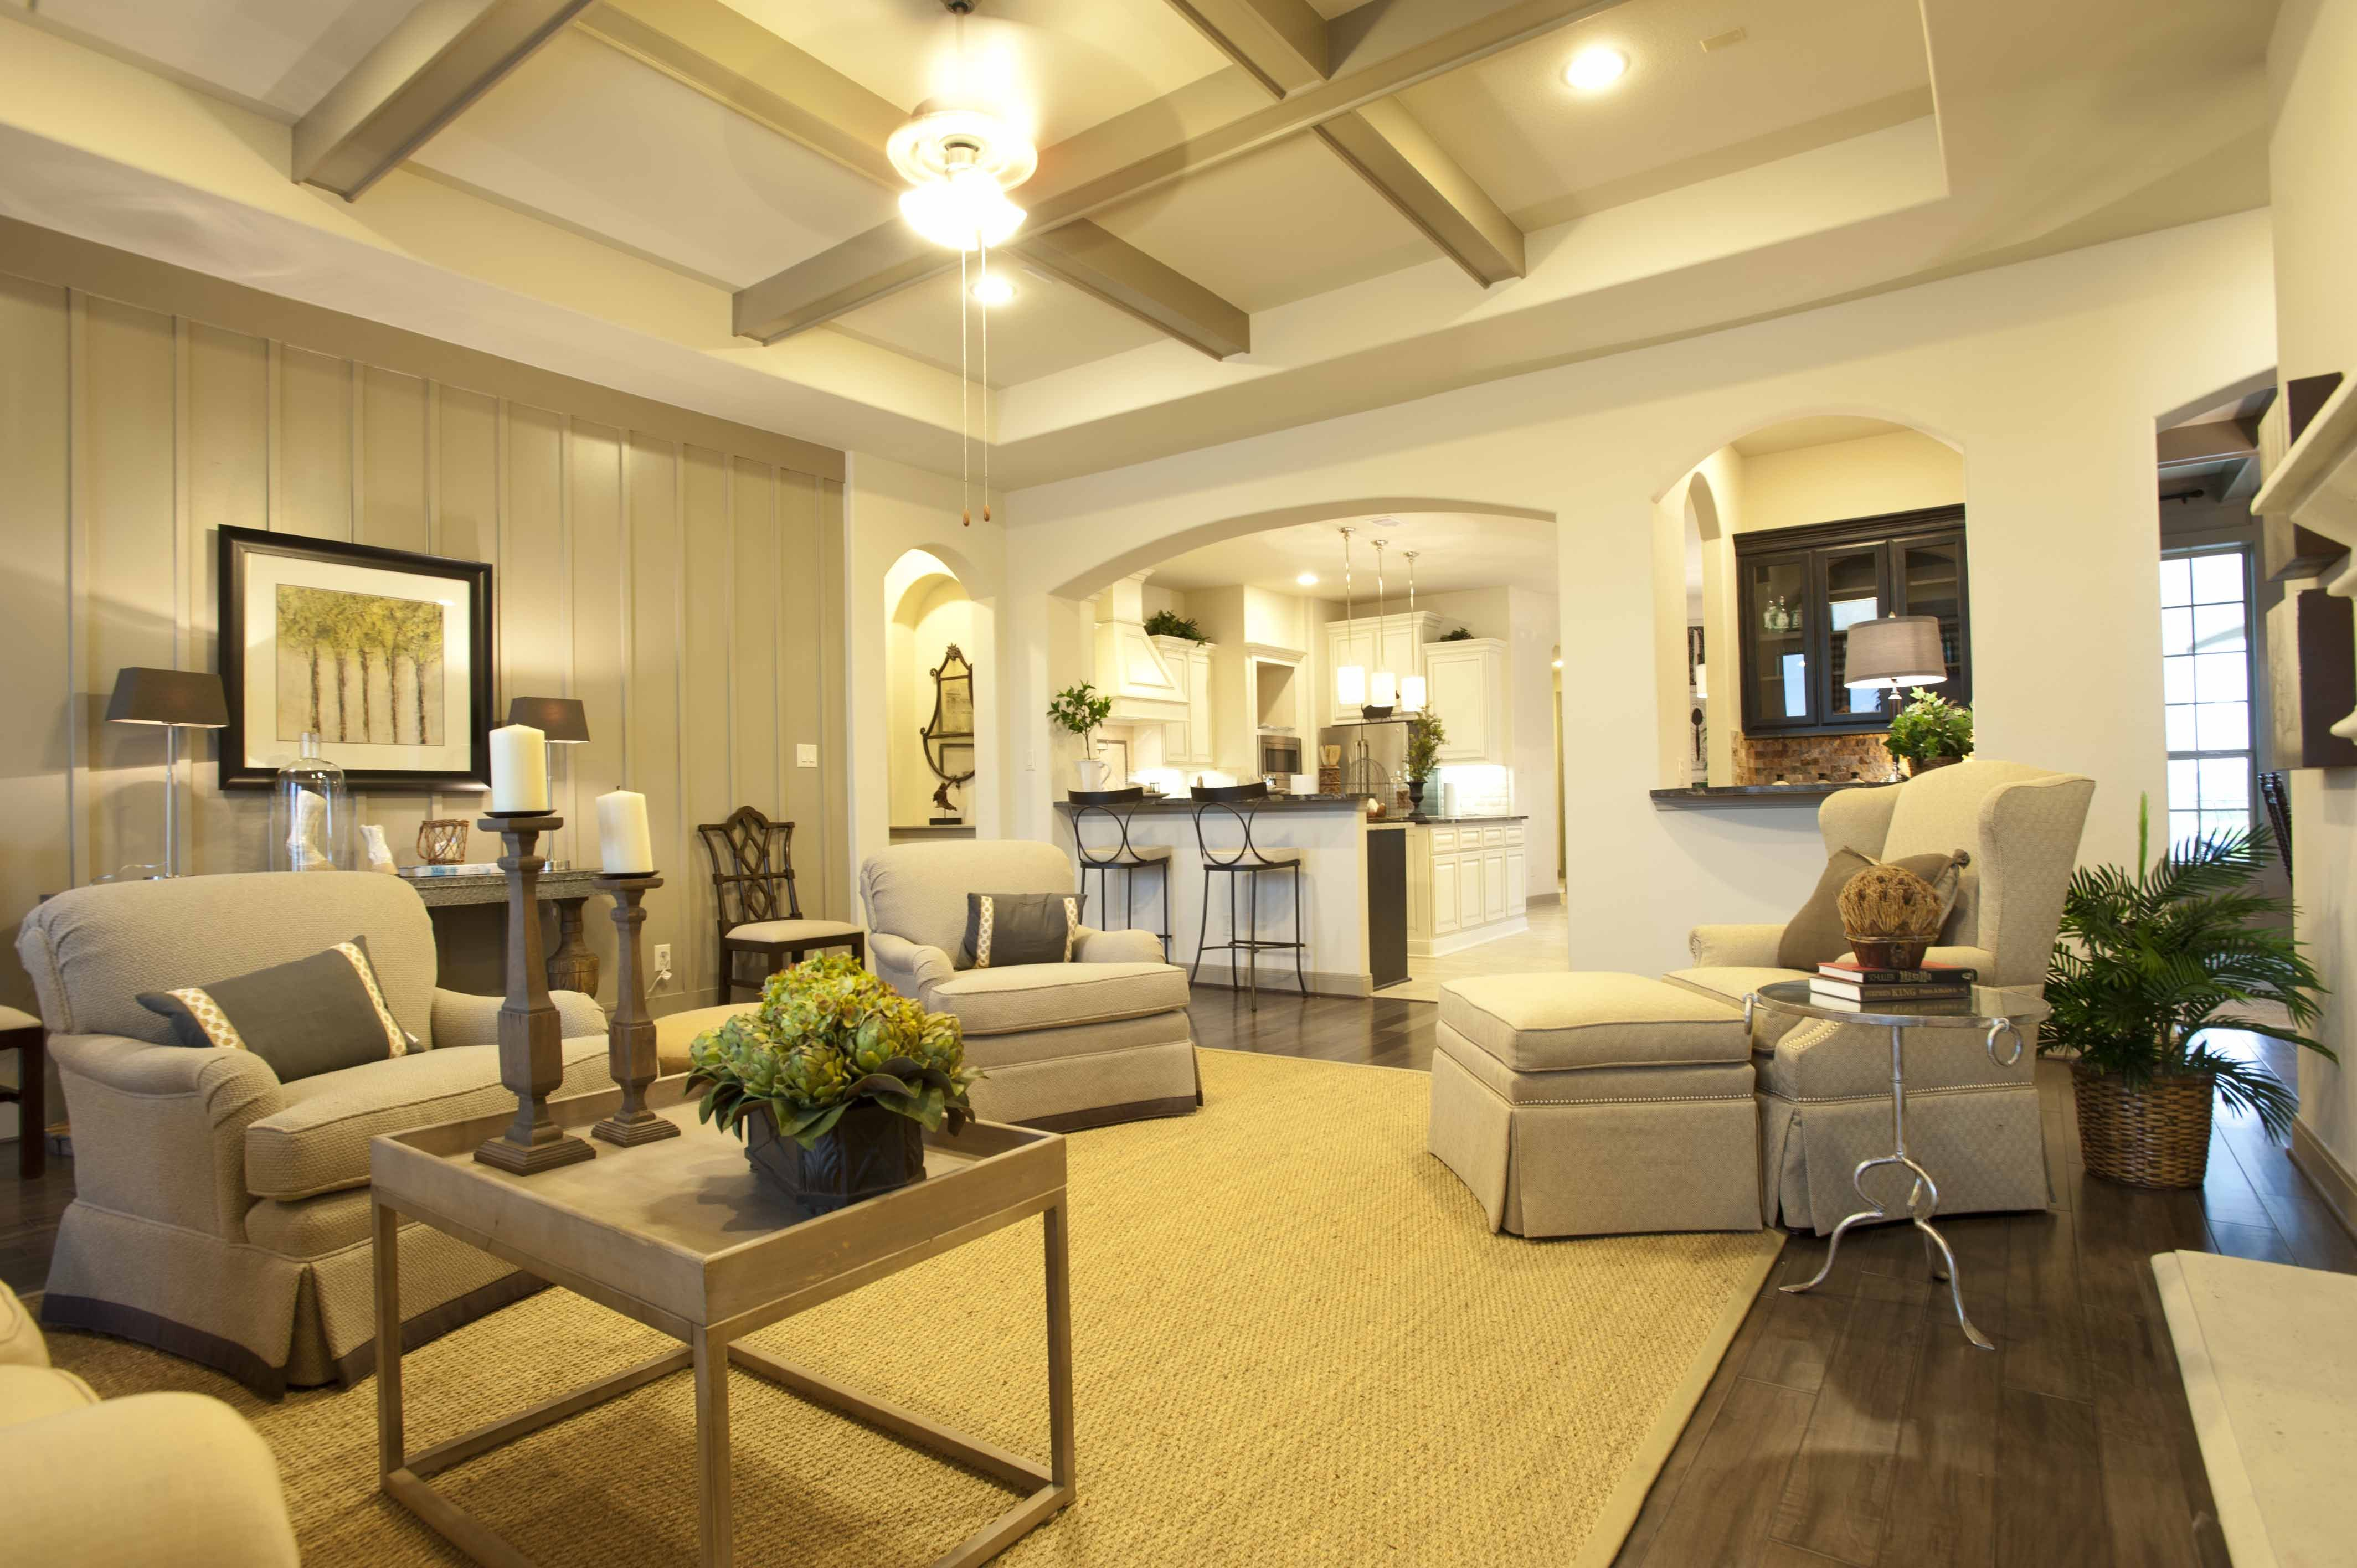 Model Home Furniture Katy Tx Coventry Homes Model Home In Katy Txavalon At Spring Green .